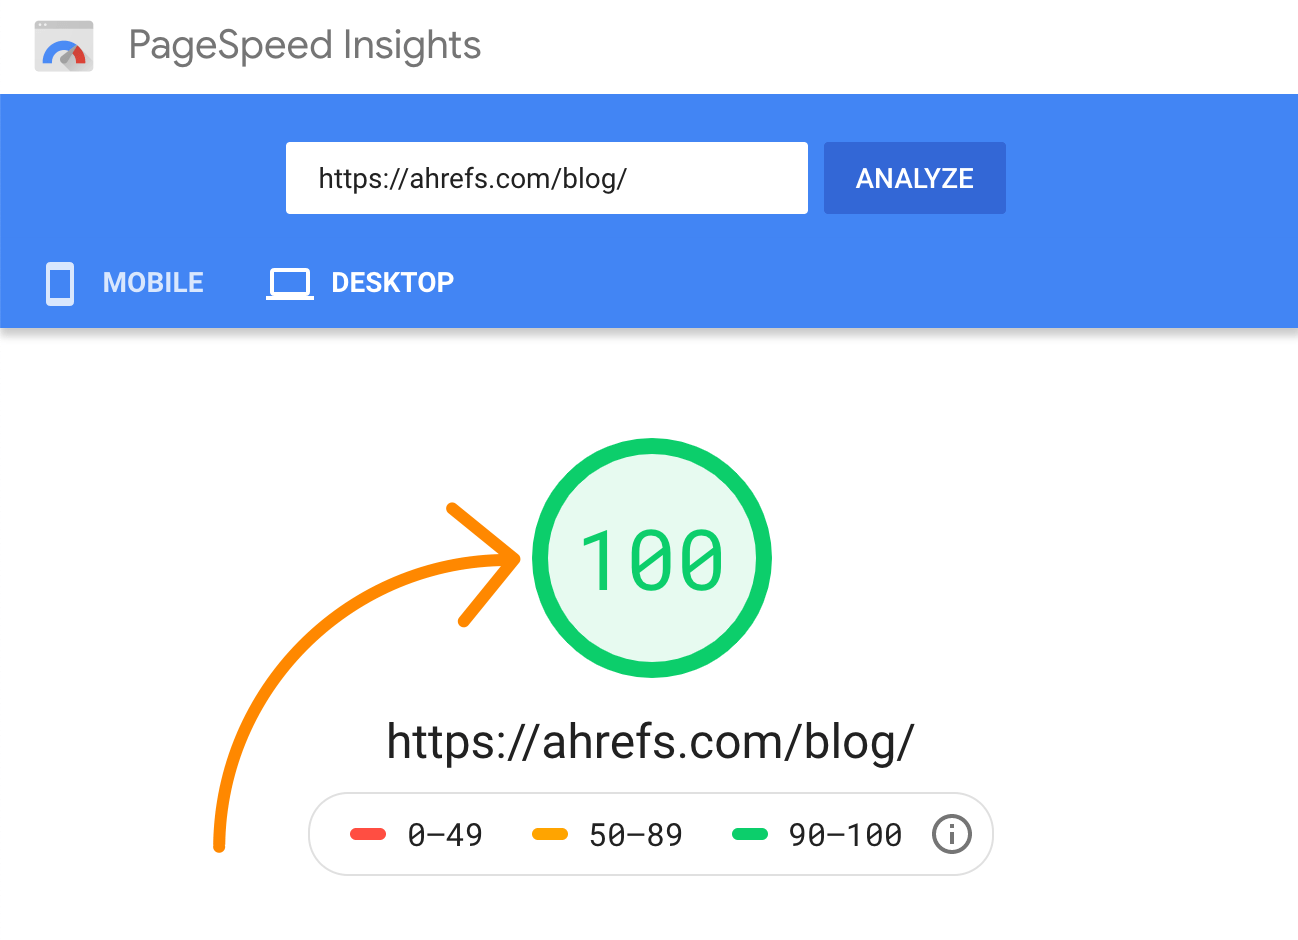 2 pagespeed insights